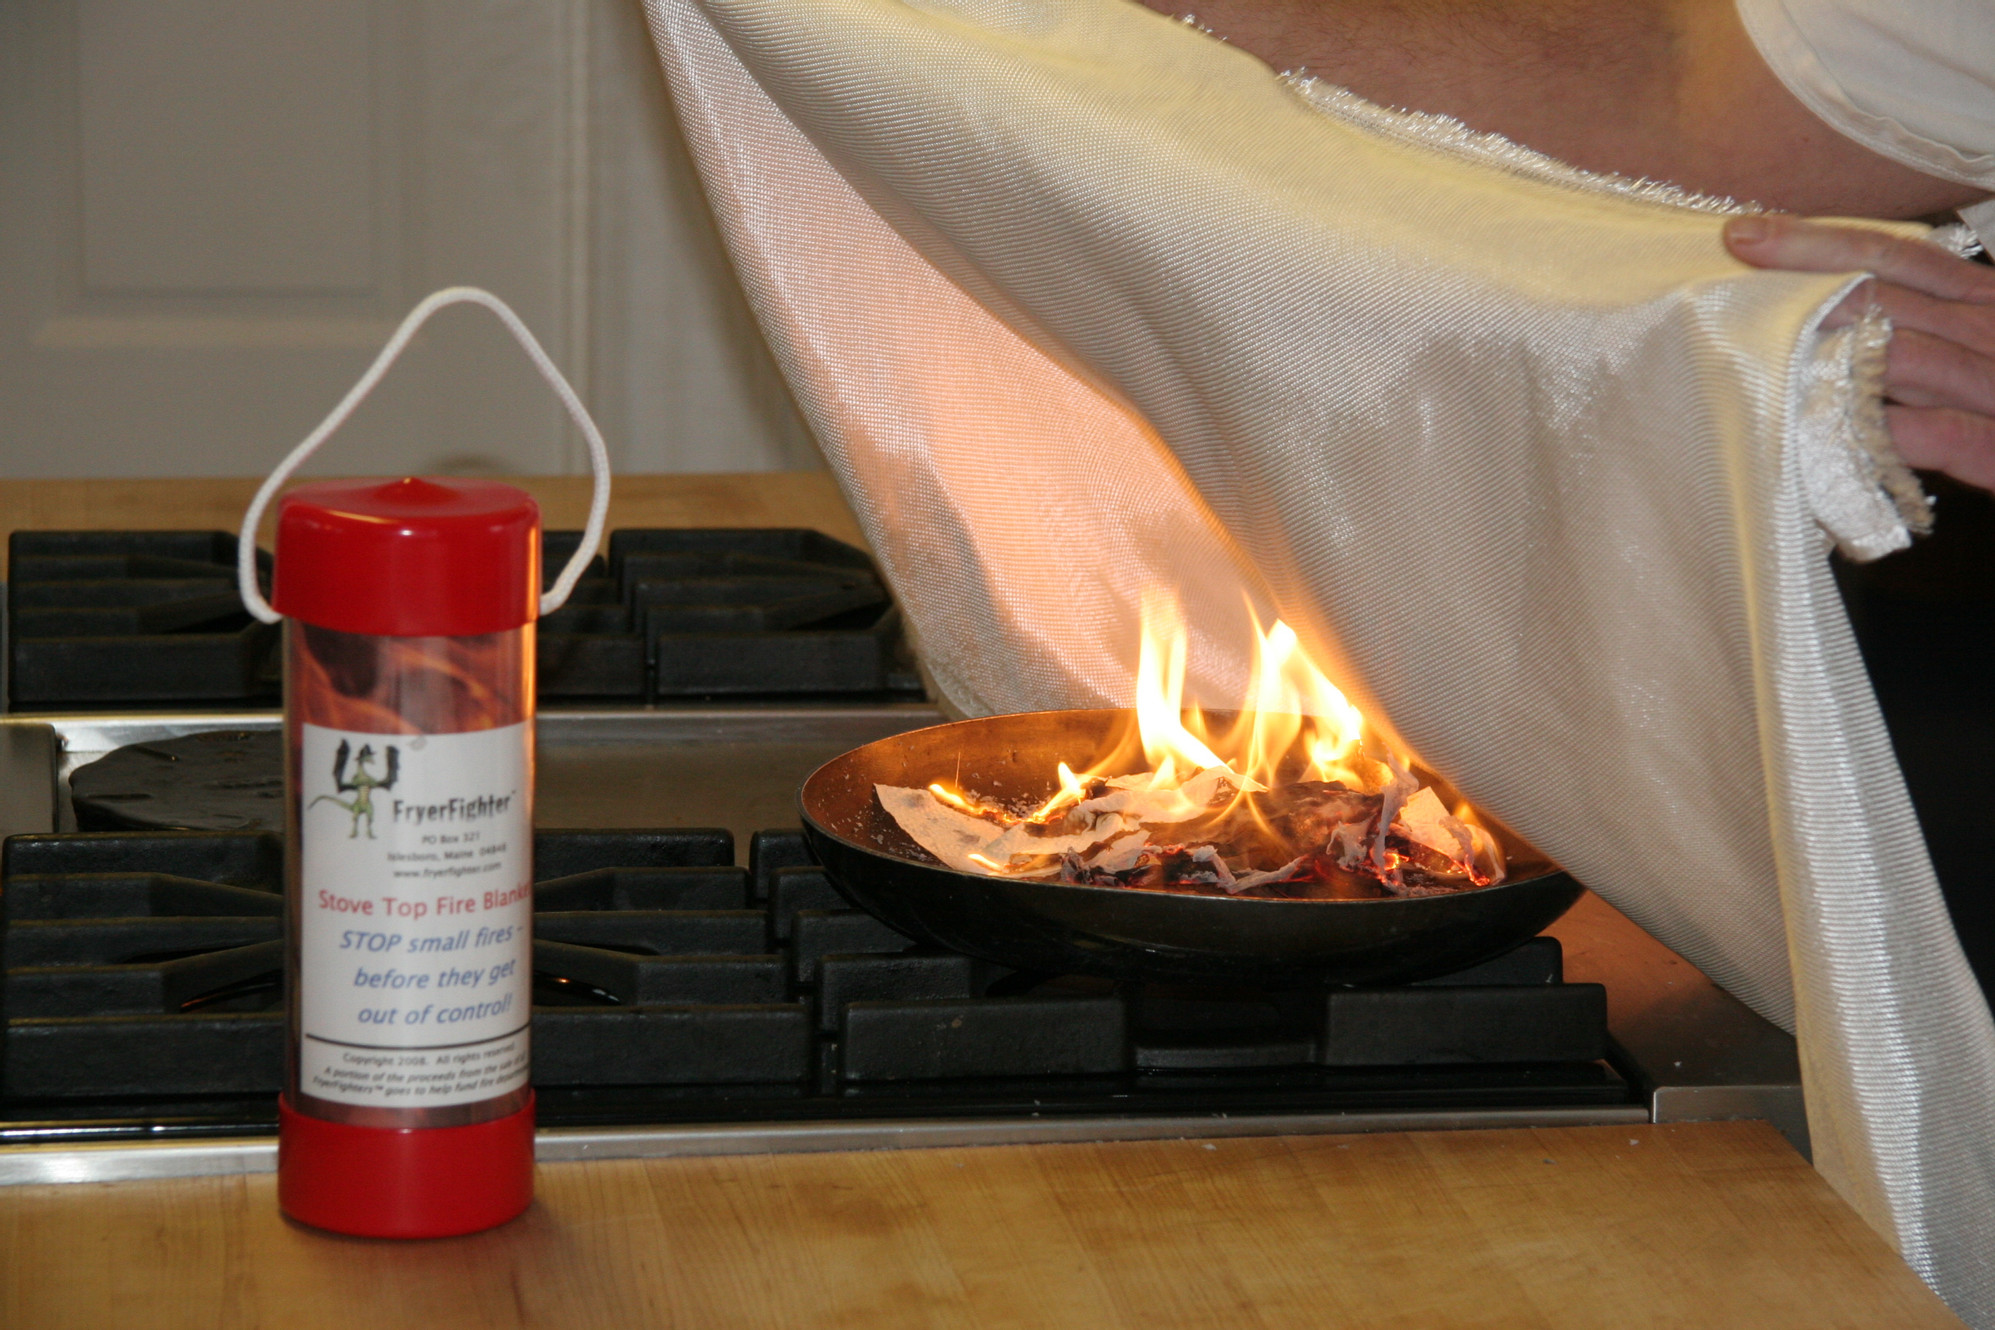 Fire Blanket Effectively